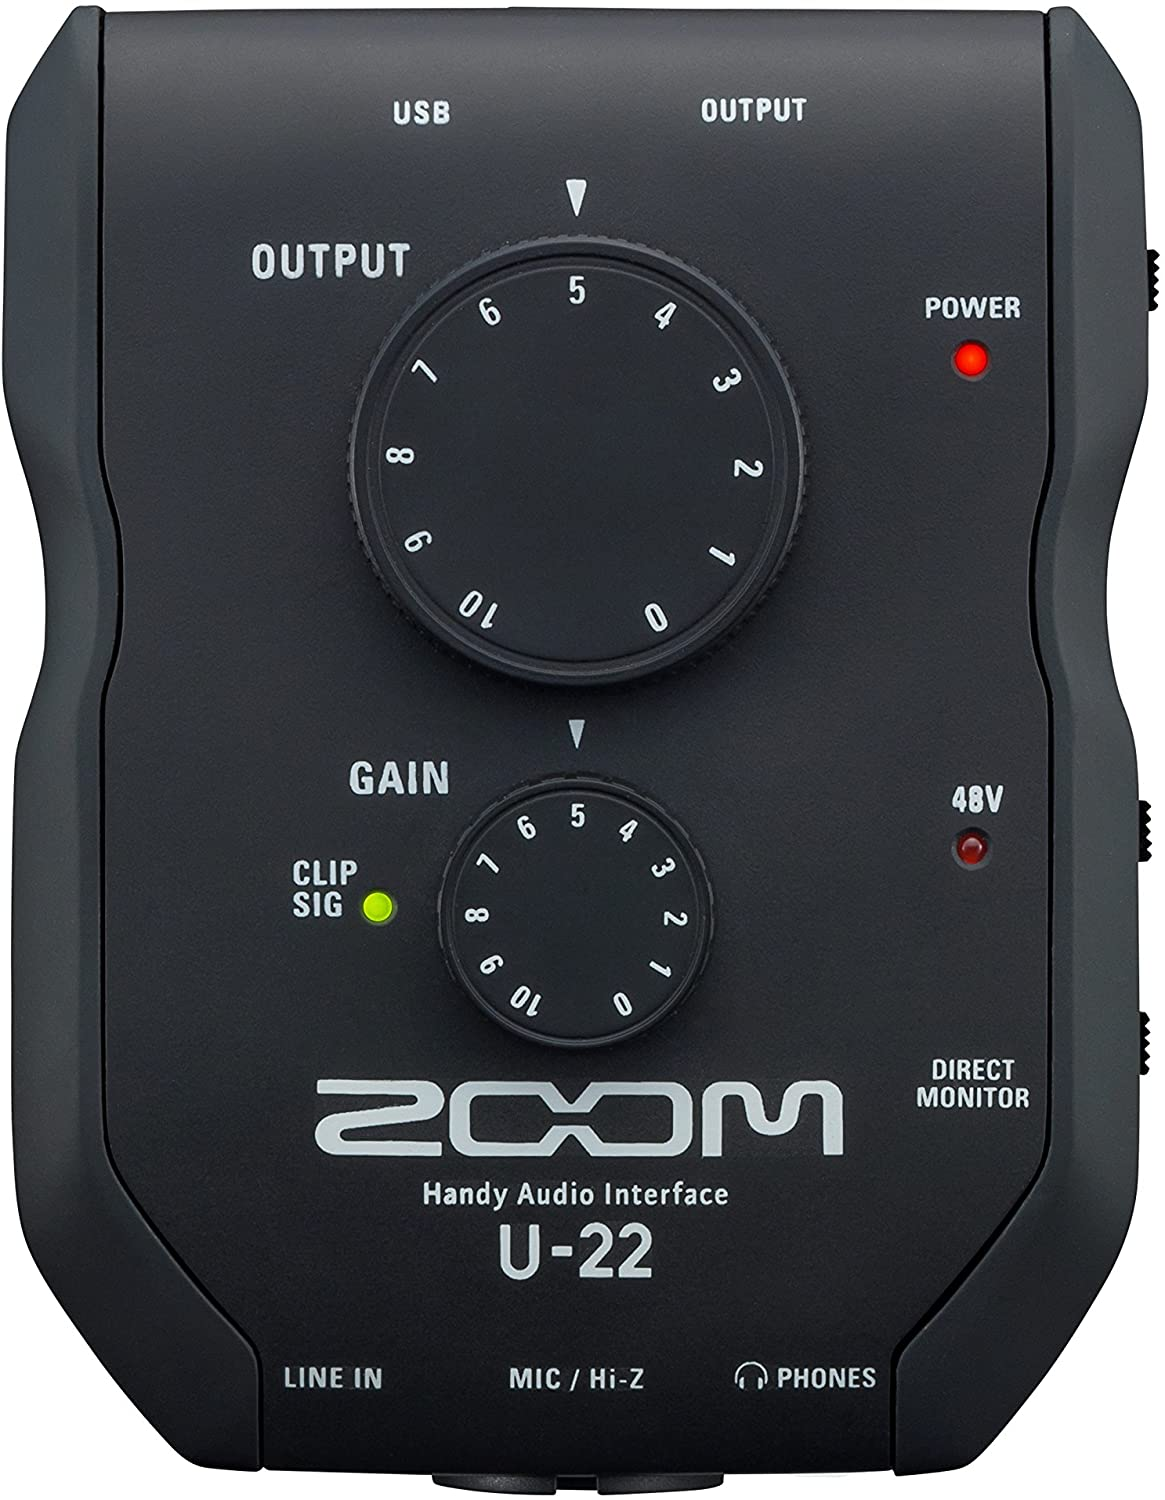 Zoom U-22 Handy Audio Interface, 2-Channel Portable USB Audio Interface, 1 XLR/TRS Input, Battery or Bus Powered, Phantom Power